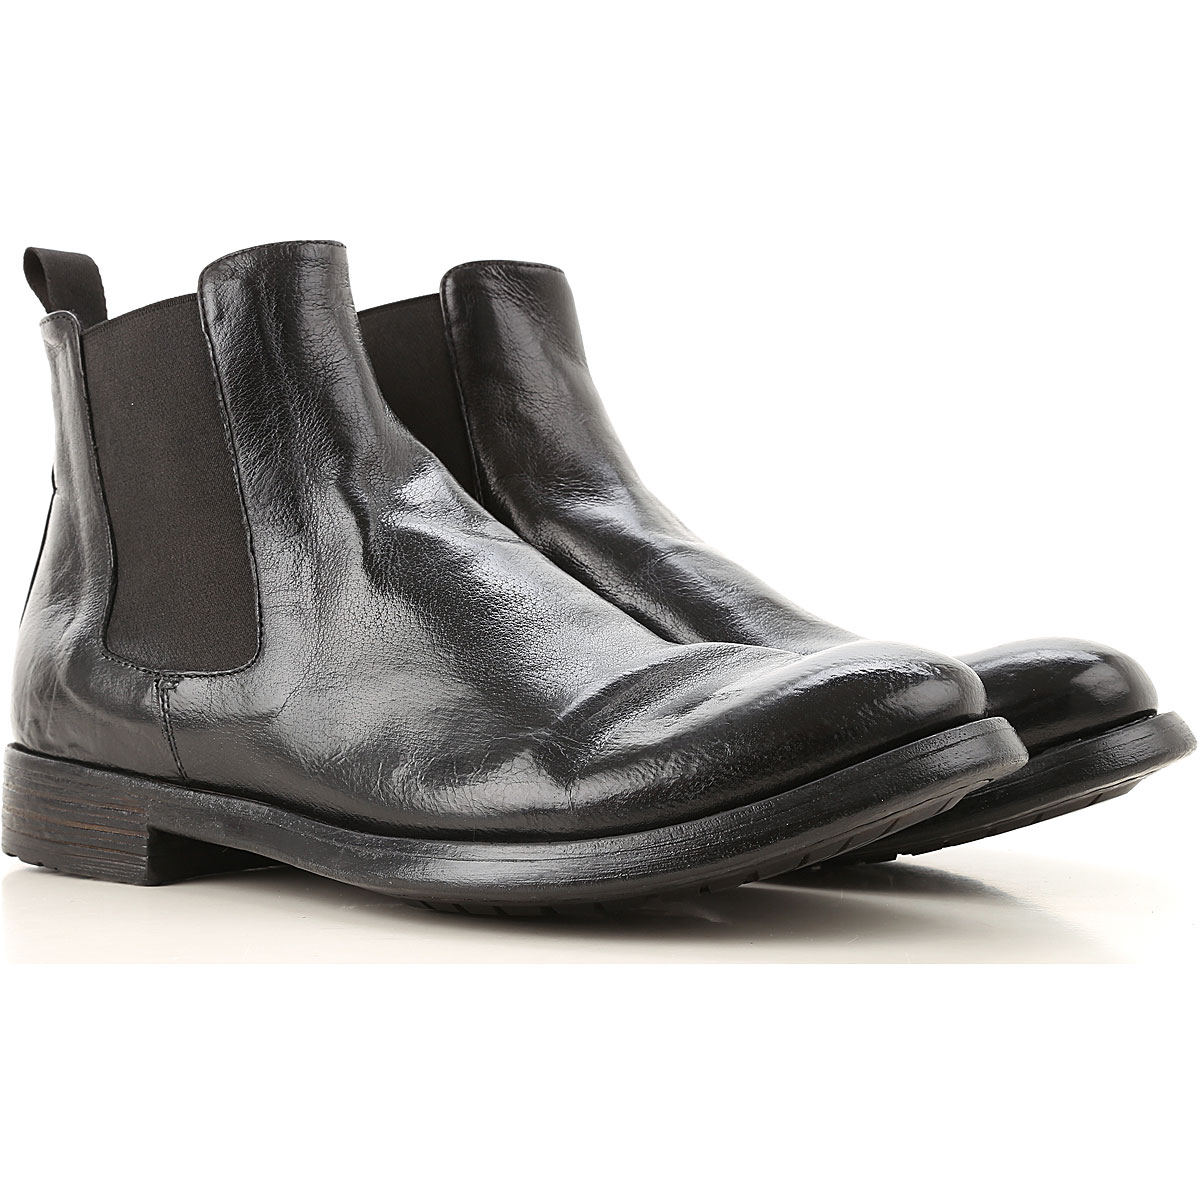 Officine Creative Chelsea Boots for Men On Sale, Black, Leather, 2019, 10.25 10.5 11 11.75 12 7 7.5 8.5